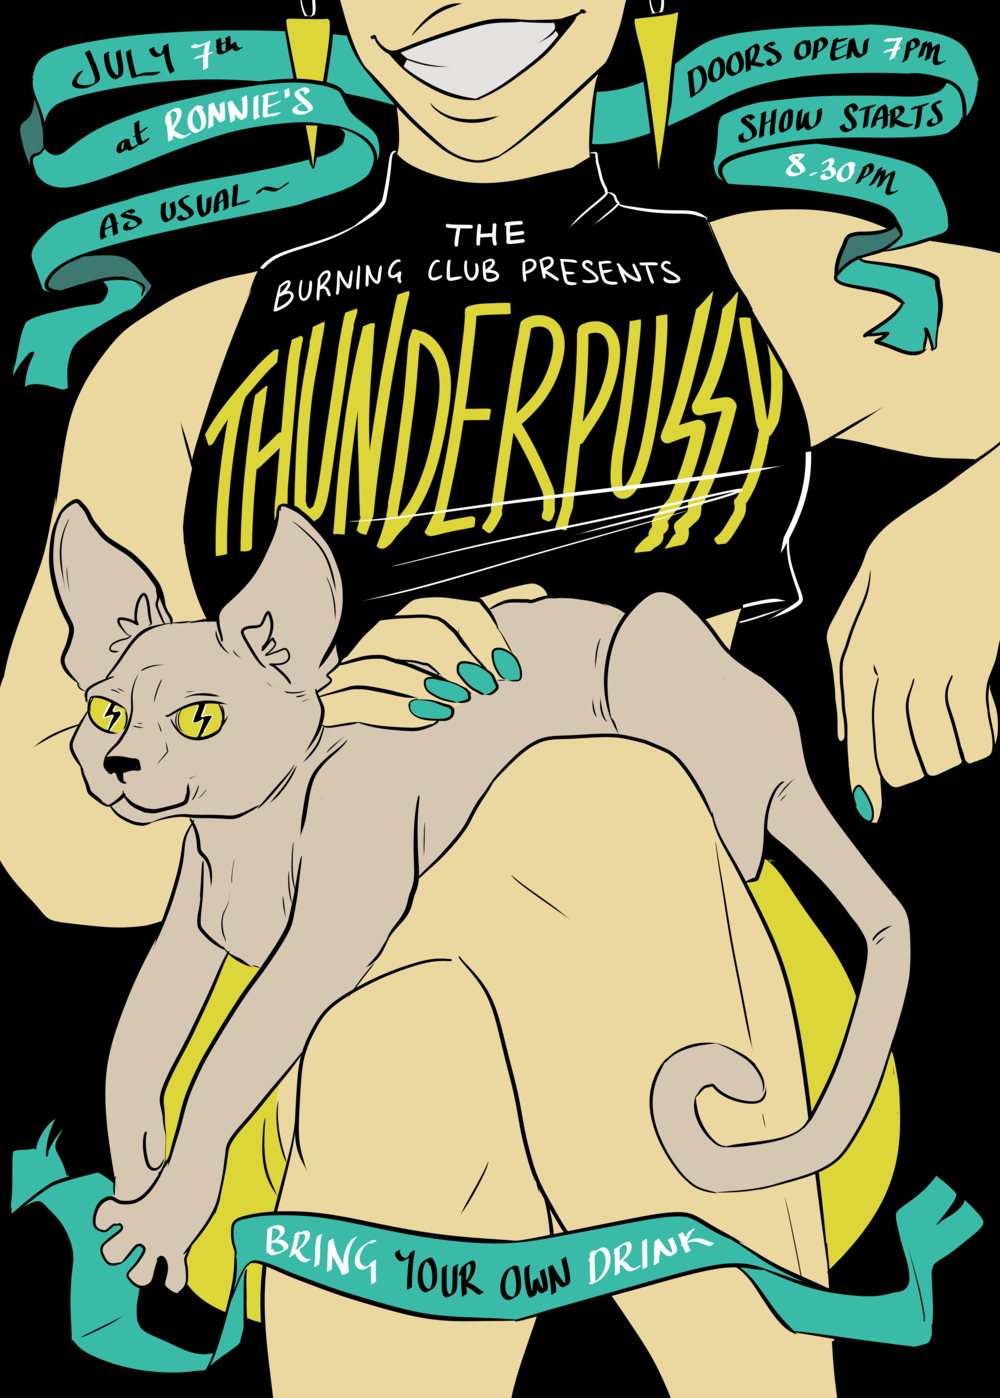 15.6.17 thunderpussy.png